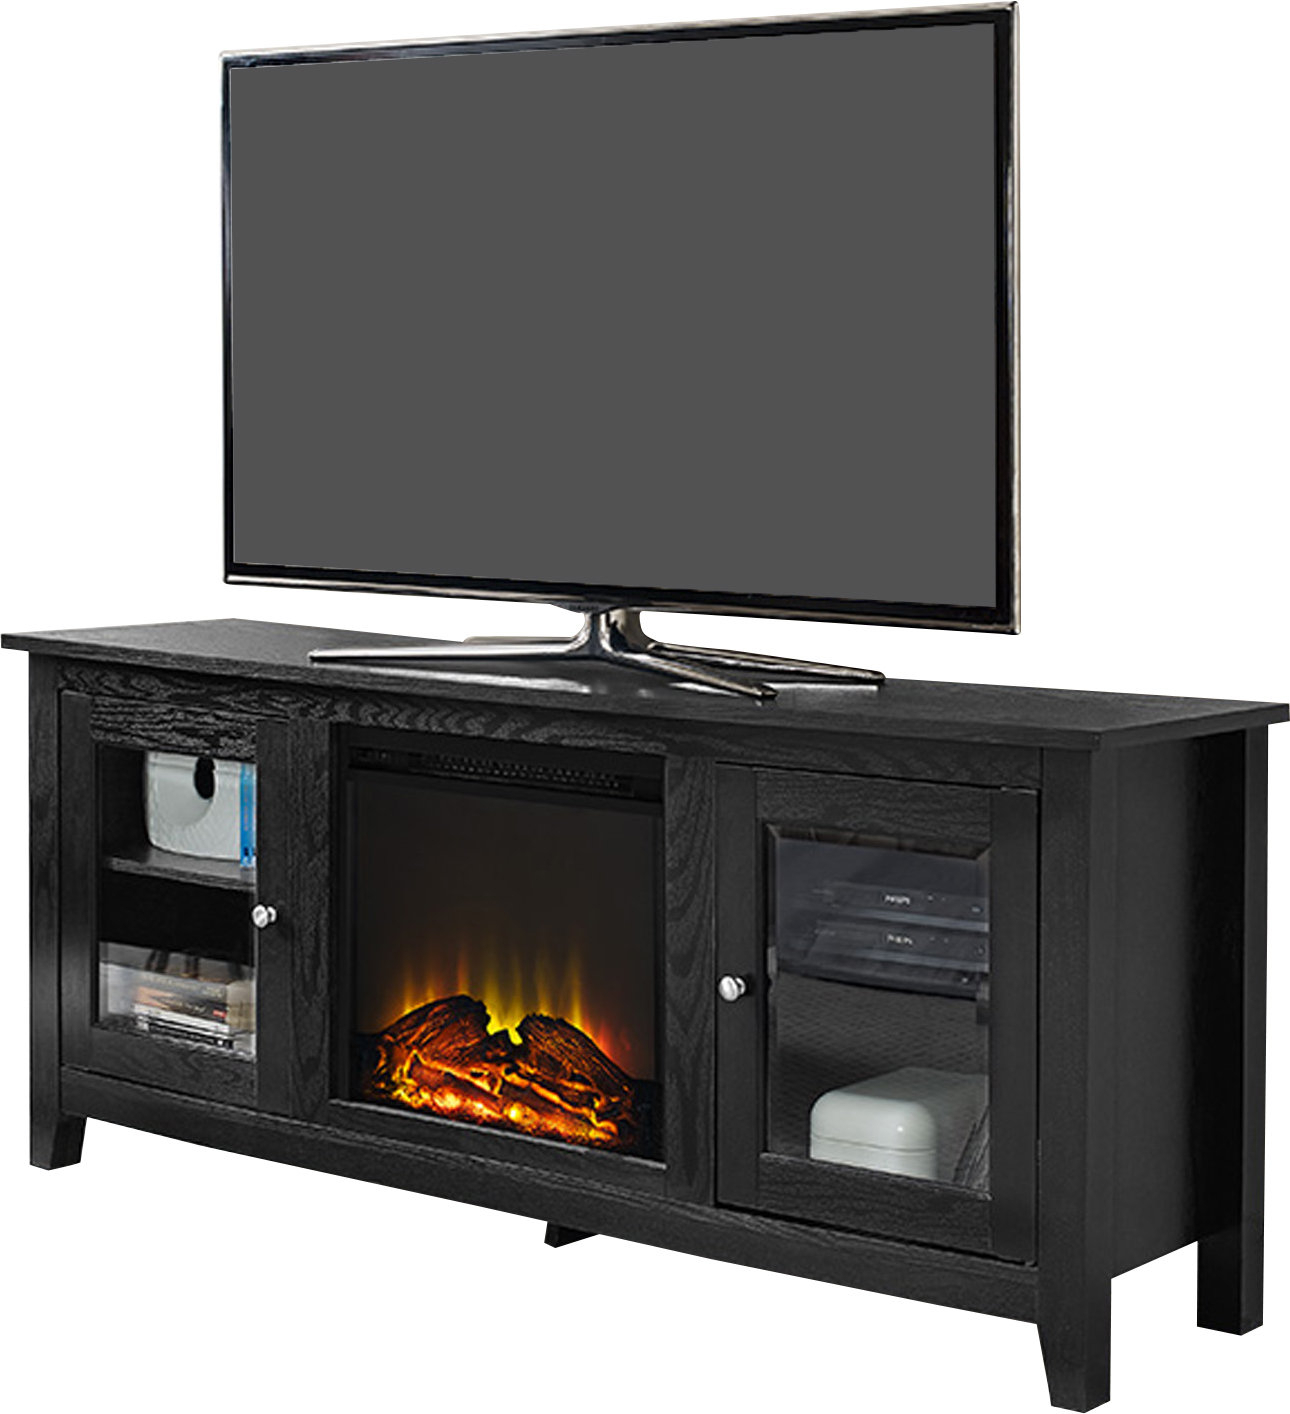 Tv Stand Tv Stands | Joss & Main With Regard To Edwin Grey 64 Inch Tv Stands (View 16 of 30)